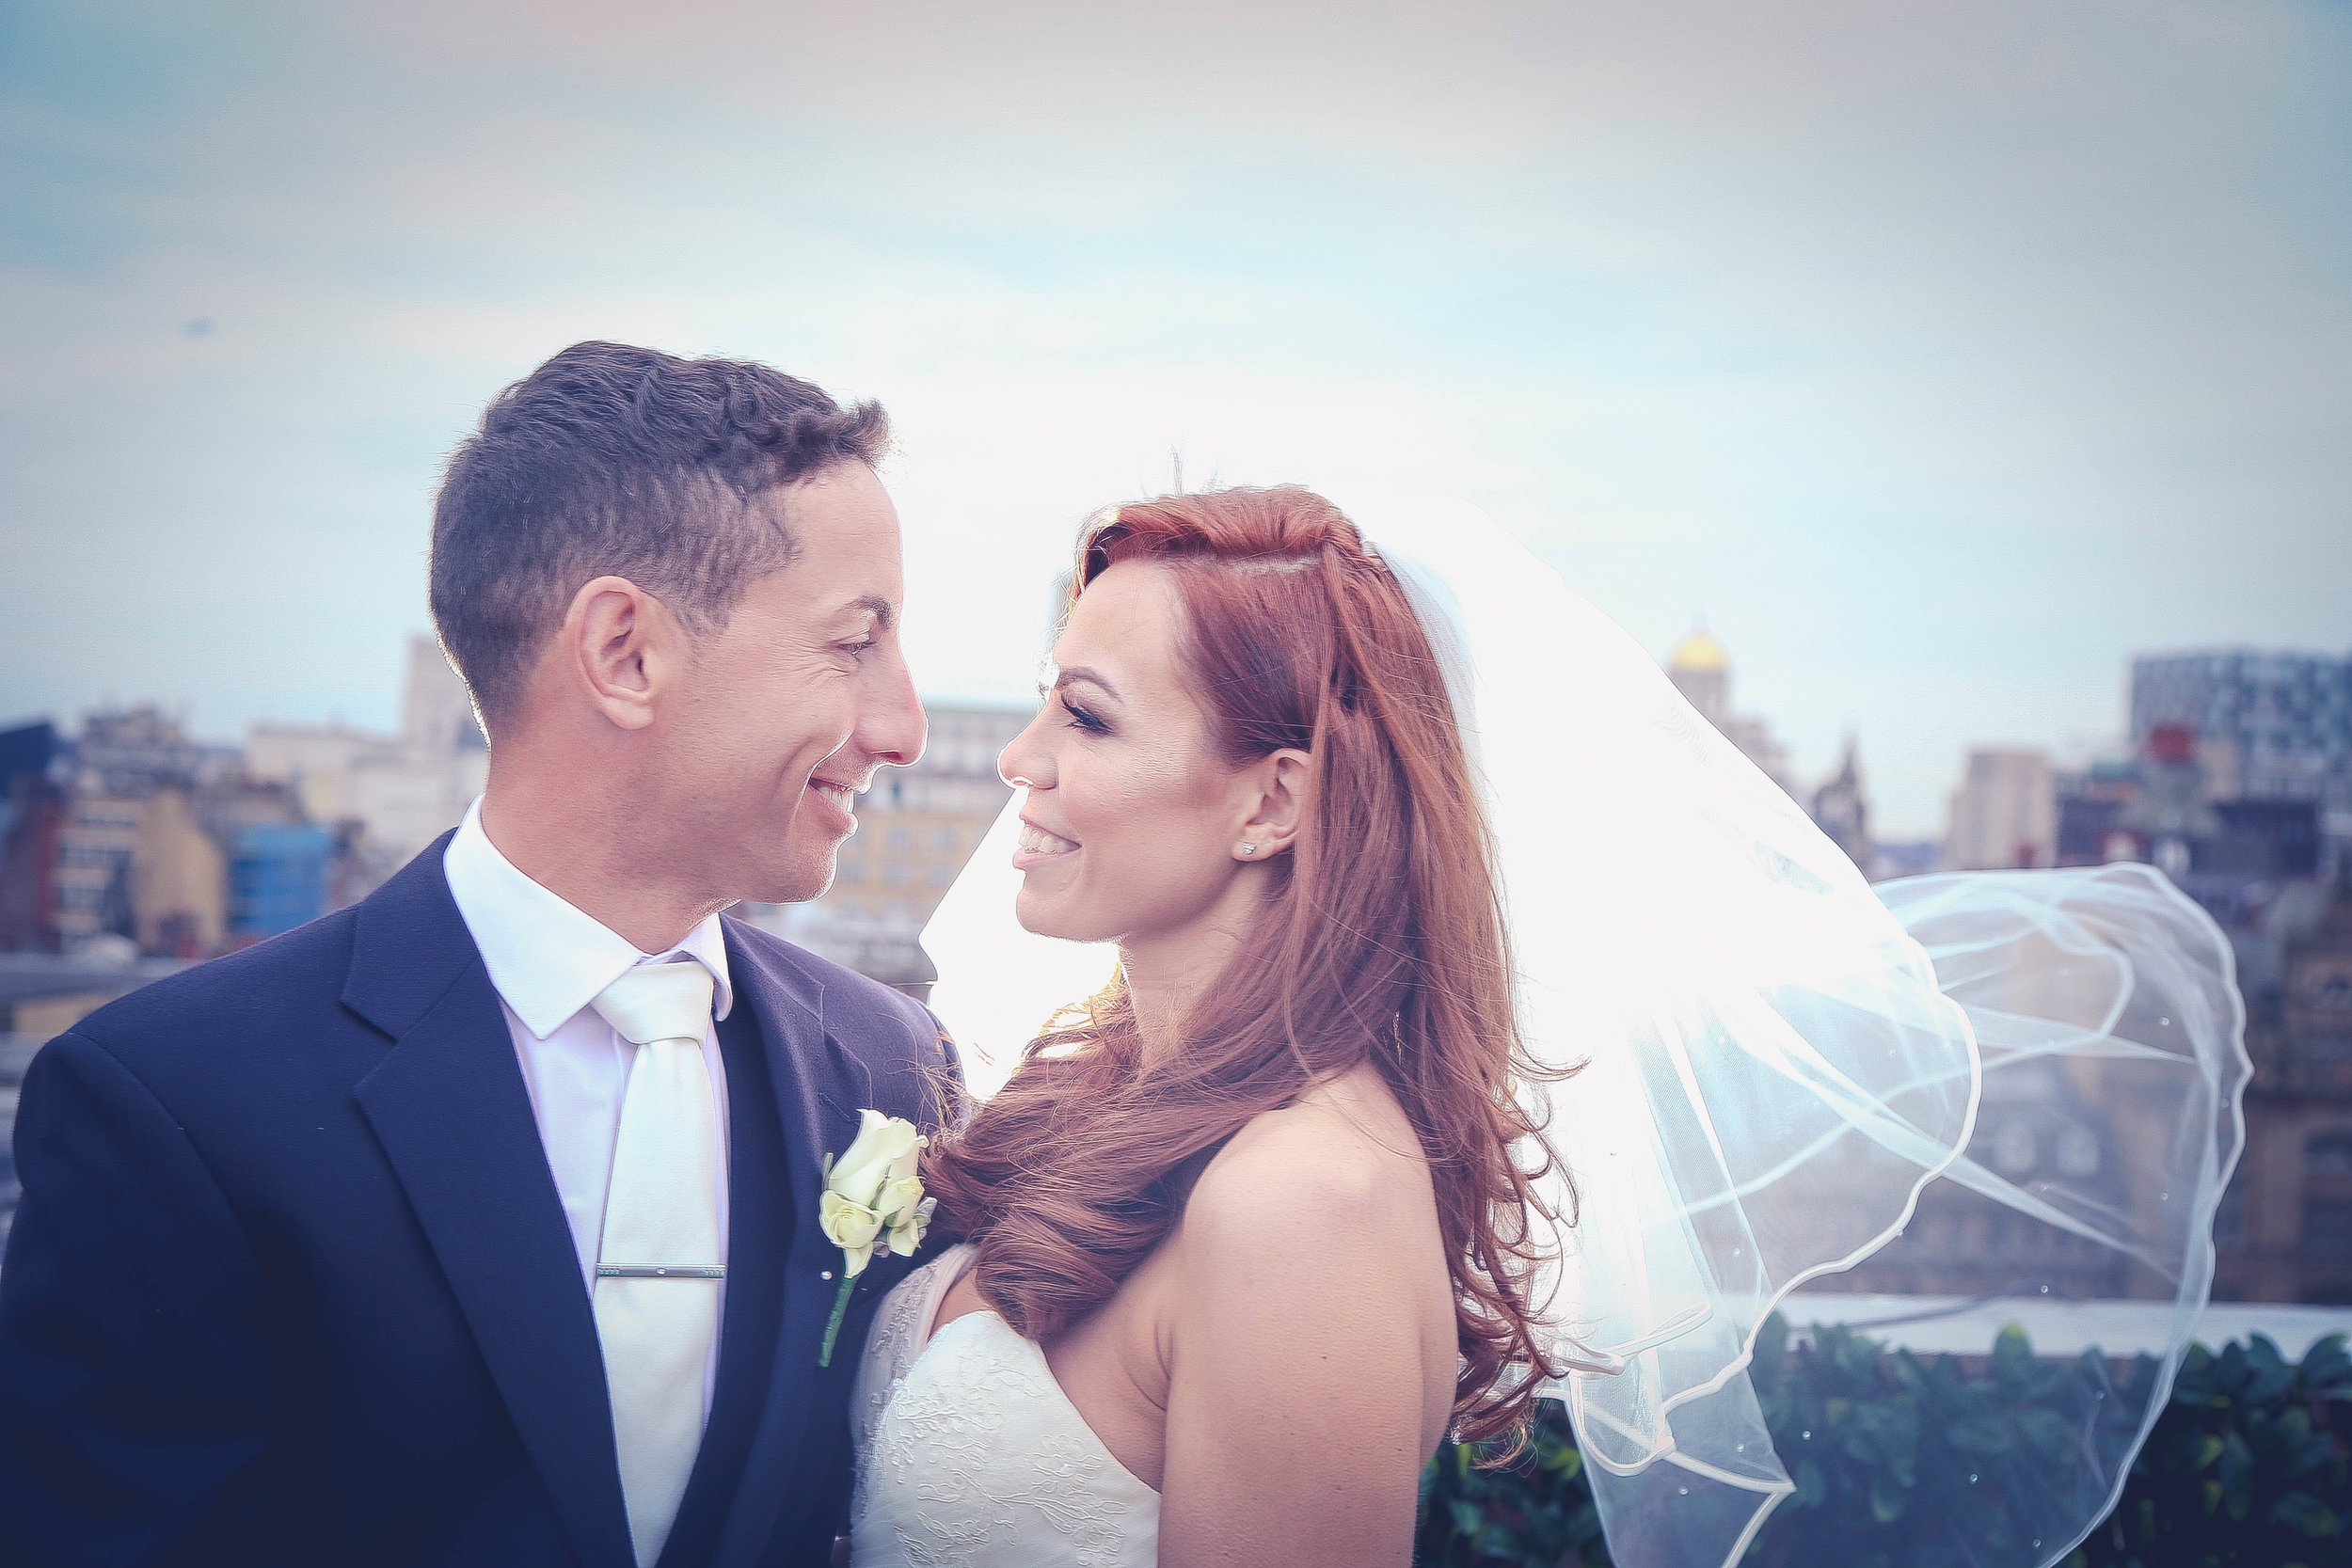 Weddings at the shankly hotel liverpool-97.jpg